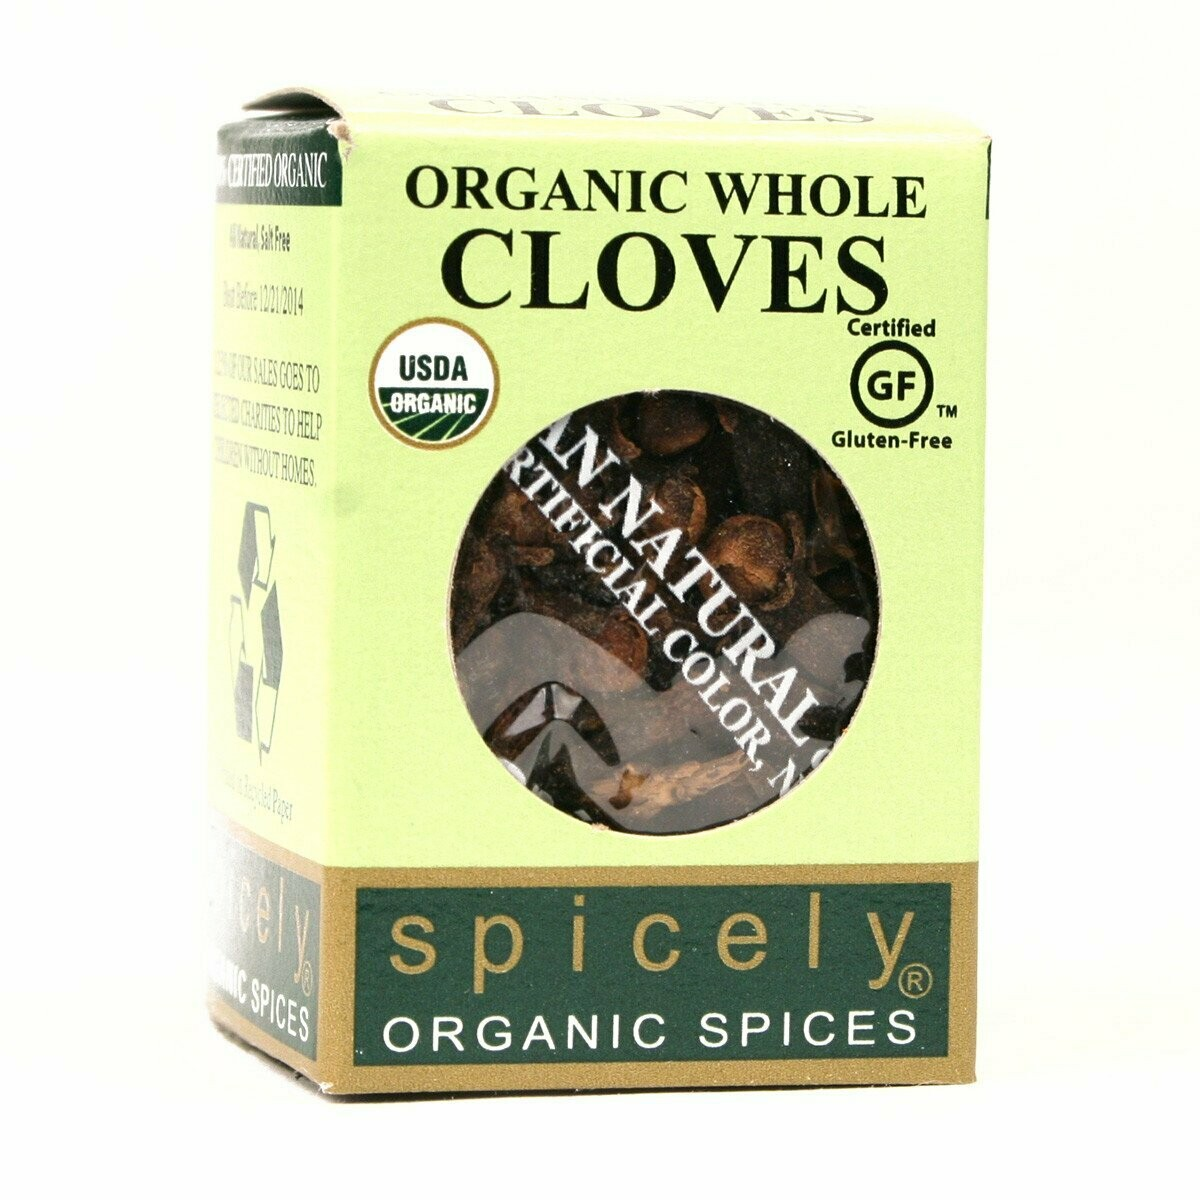 Organic Whole Cloves